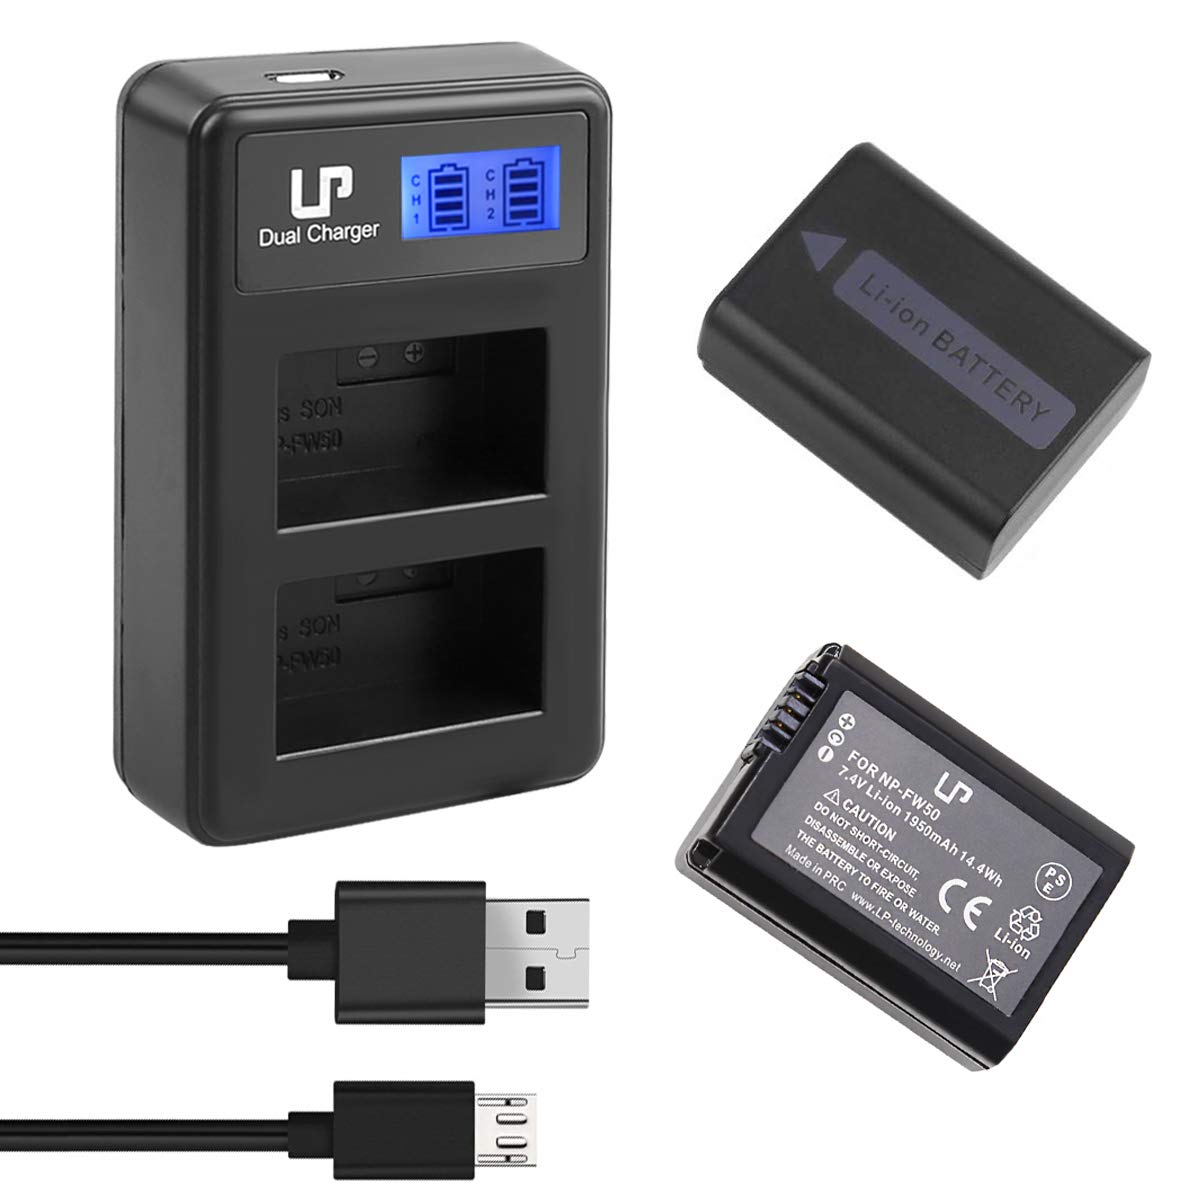 LP NP-FW50 Battery Charger Pack, 2-Pack Battery & LCD Dual Charger, Compatible with Sony Alpha A6000, A6400, A6100, A6300, A6500, A5100, A7, A7 II, A7R, A7R II, A7R2, A7S, A7S II, A7S2, RX10 & More